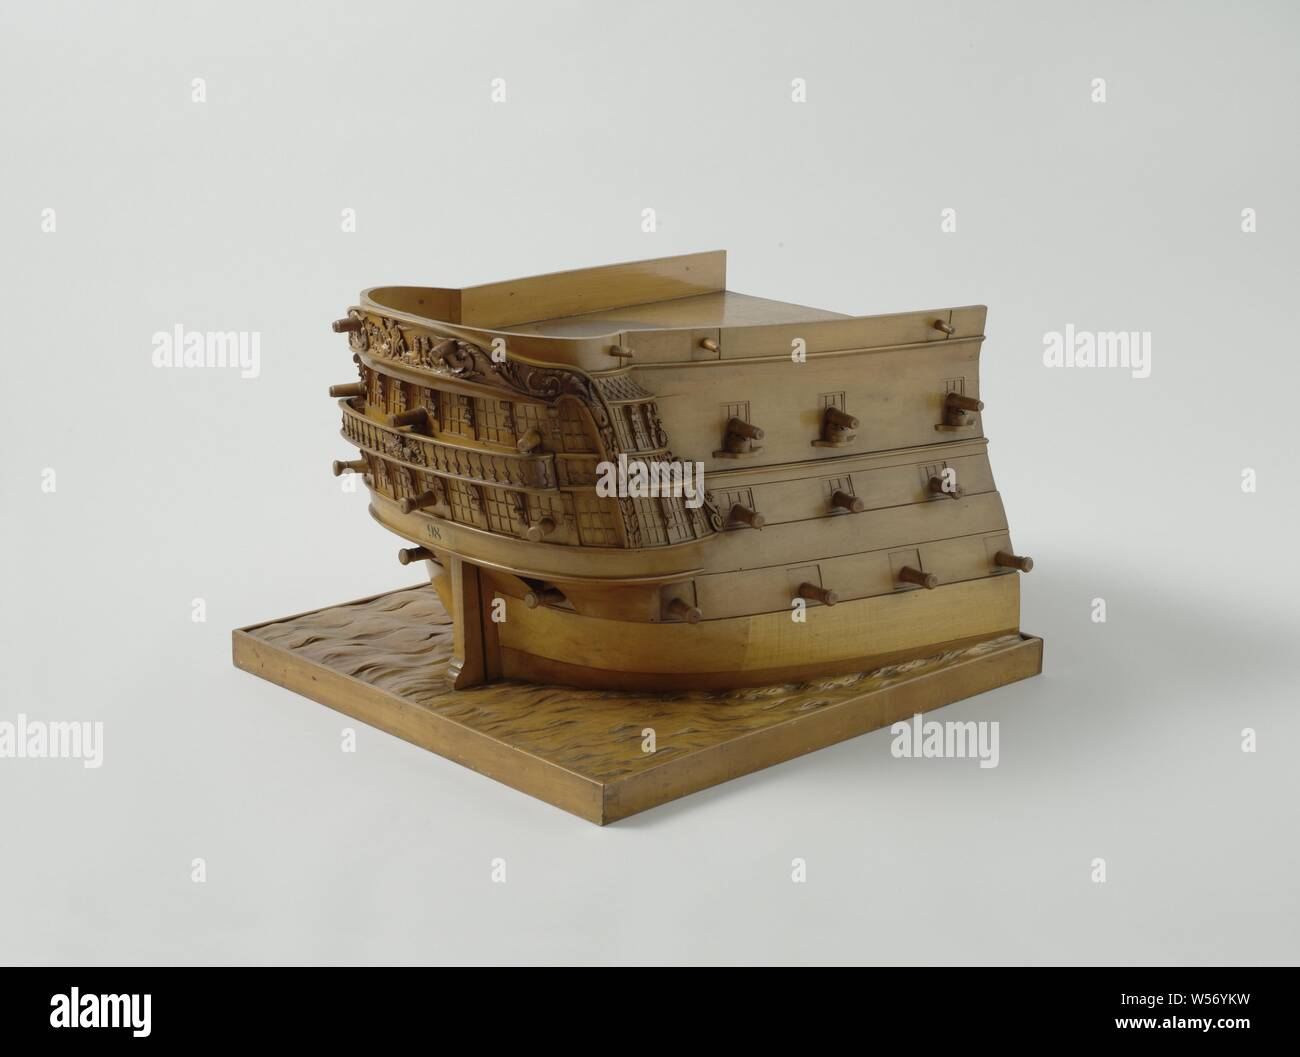 Model of the Stern of an 84-Gun Ship of the Line, Waterline model of the stern of a line ship of 84 pieces. Waterline model of the external appearance of a stern on a floorboard in which waves are carved in relief. Round stern with two-storey wulf and fence, elaborately decorated with trophies, mythological figures and accolades, and with side galleries. The western corridor on the top floor is decorated with the Rijkswapen and is supported by volute-shaped knees. Above the fence a Neptune surrounded by tritons. Triangular hemp hole in the wulf. Four decks are indicated by gates with fire Stock Photo